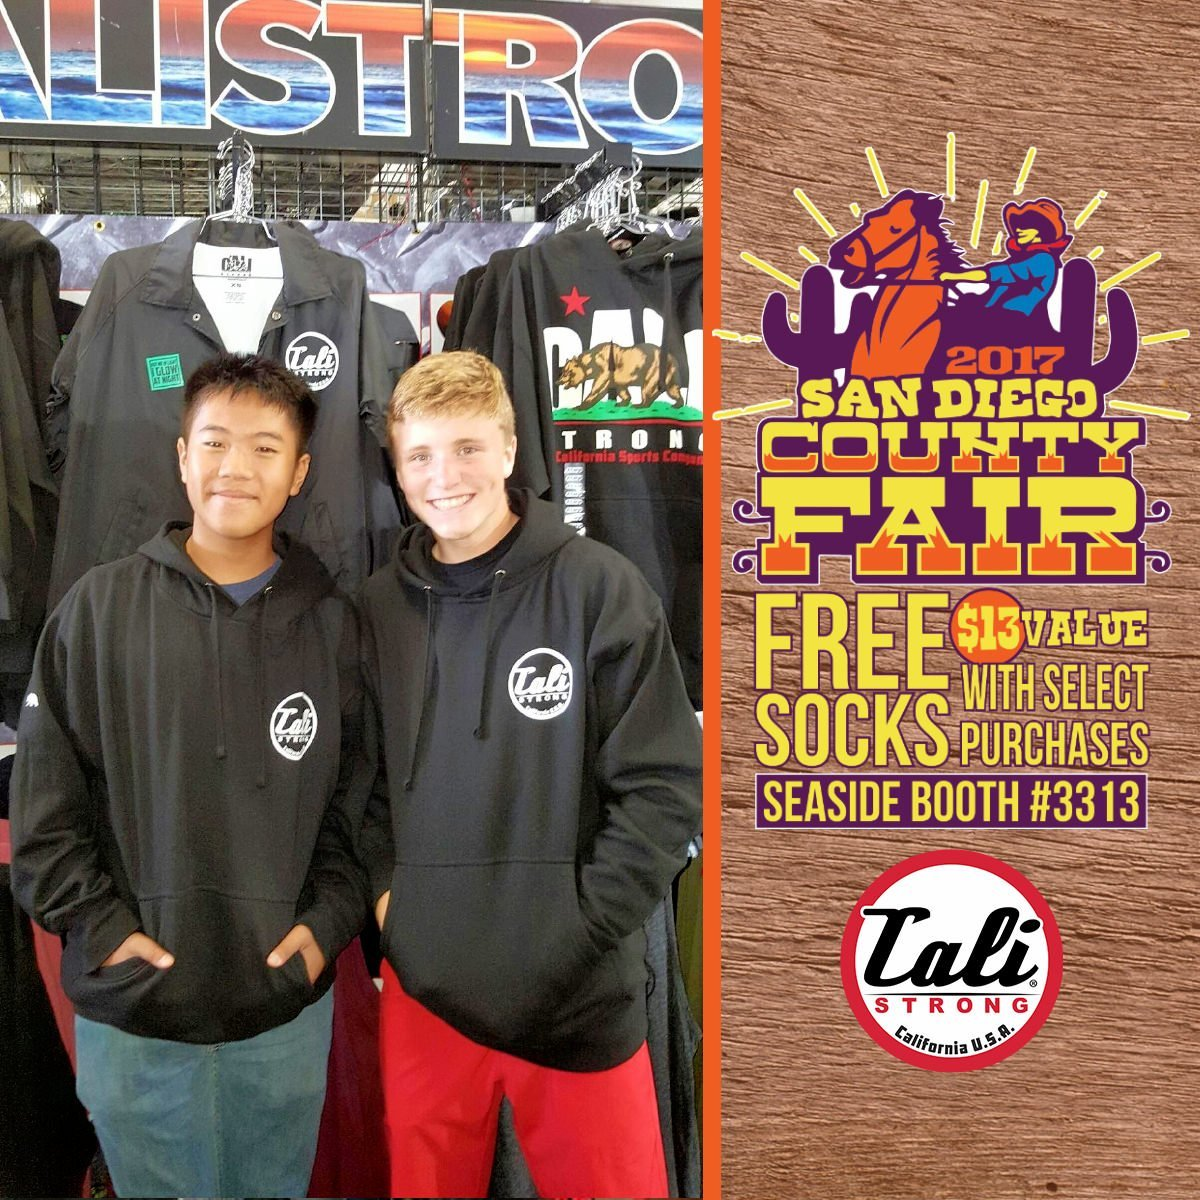 Bros sportin glow in the dark hoodies from CALI Strong at the San Diego County Fair Seaside Tent Booth 3313!